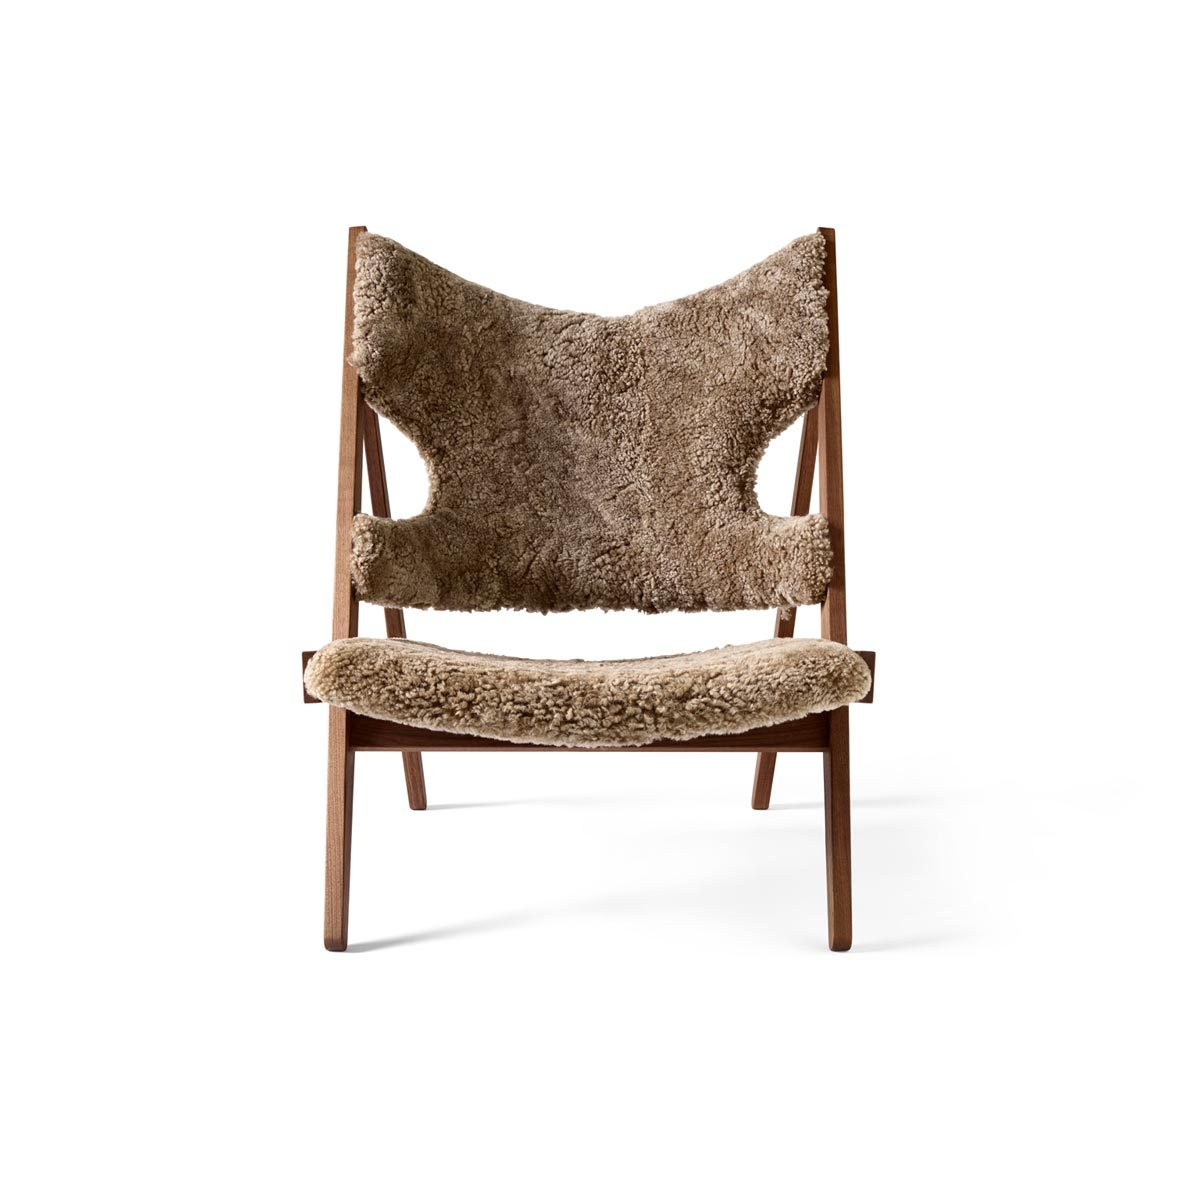 9682919_Knitting_Lounge_Chair_Walnut_Cork_19_Front